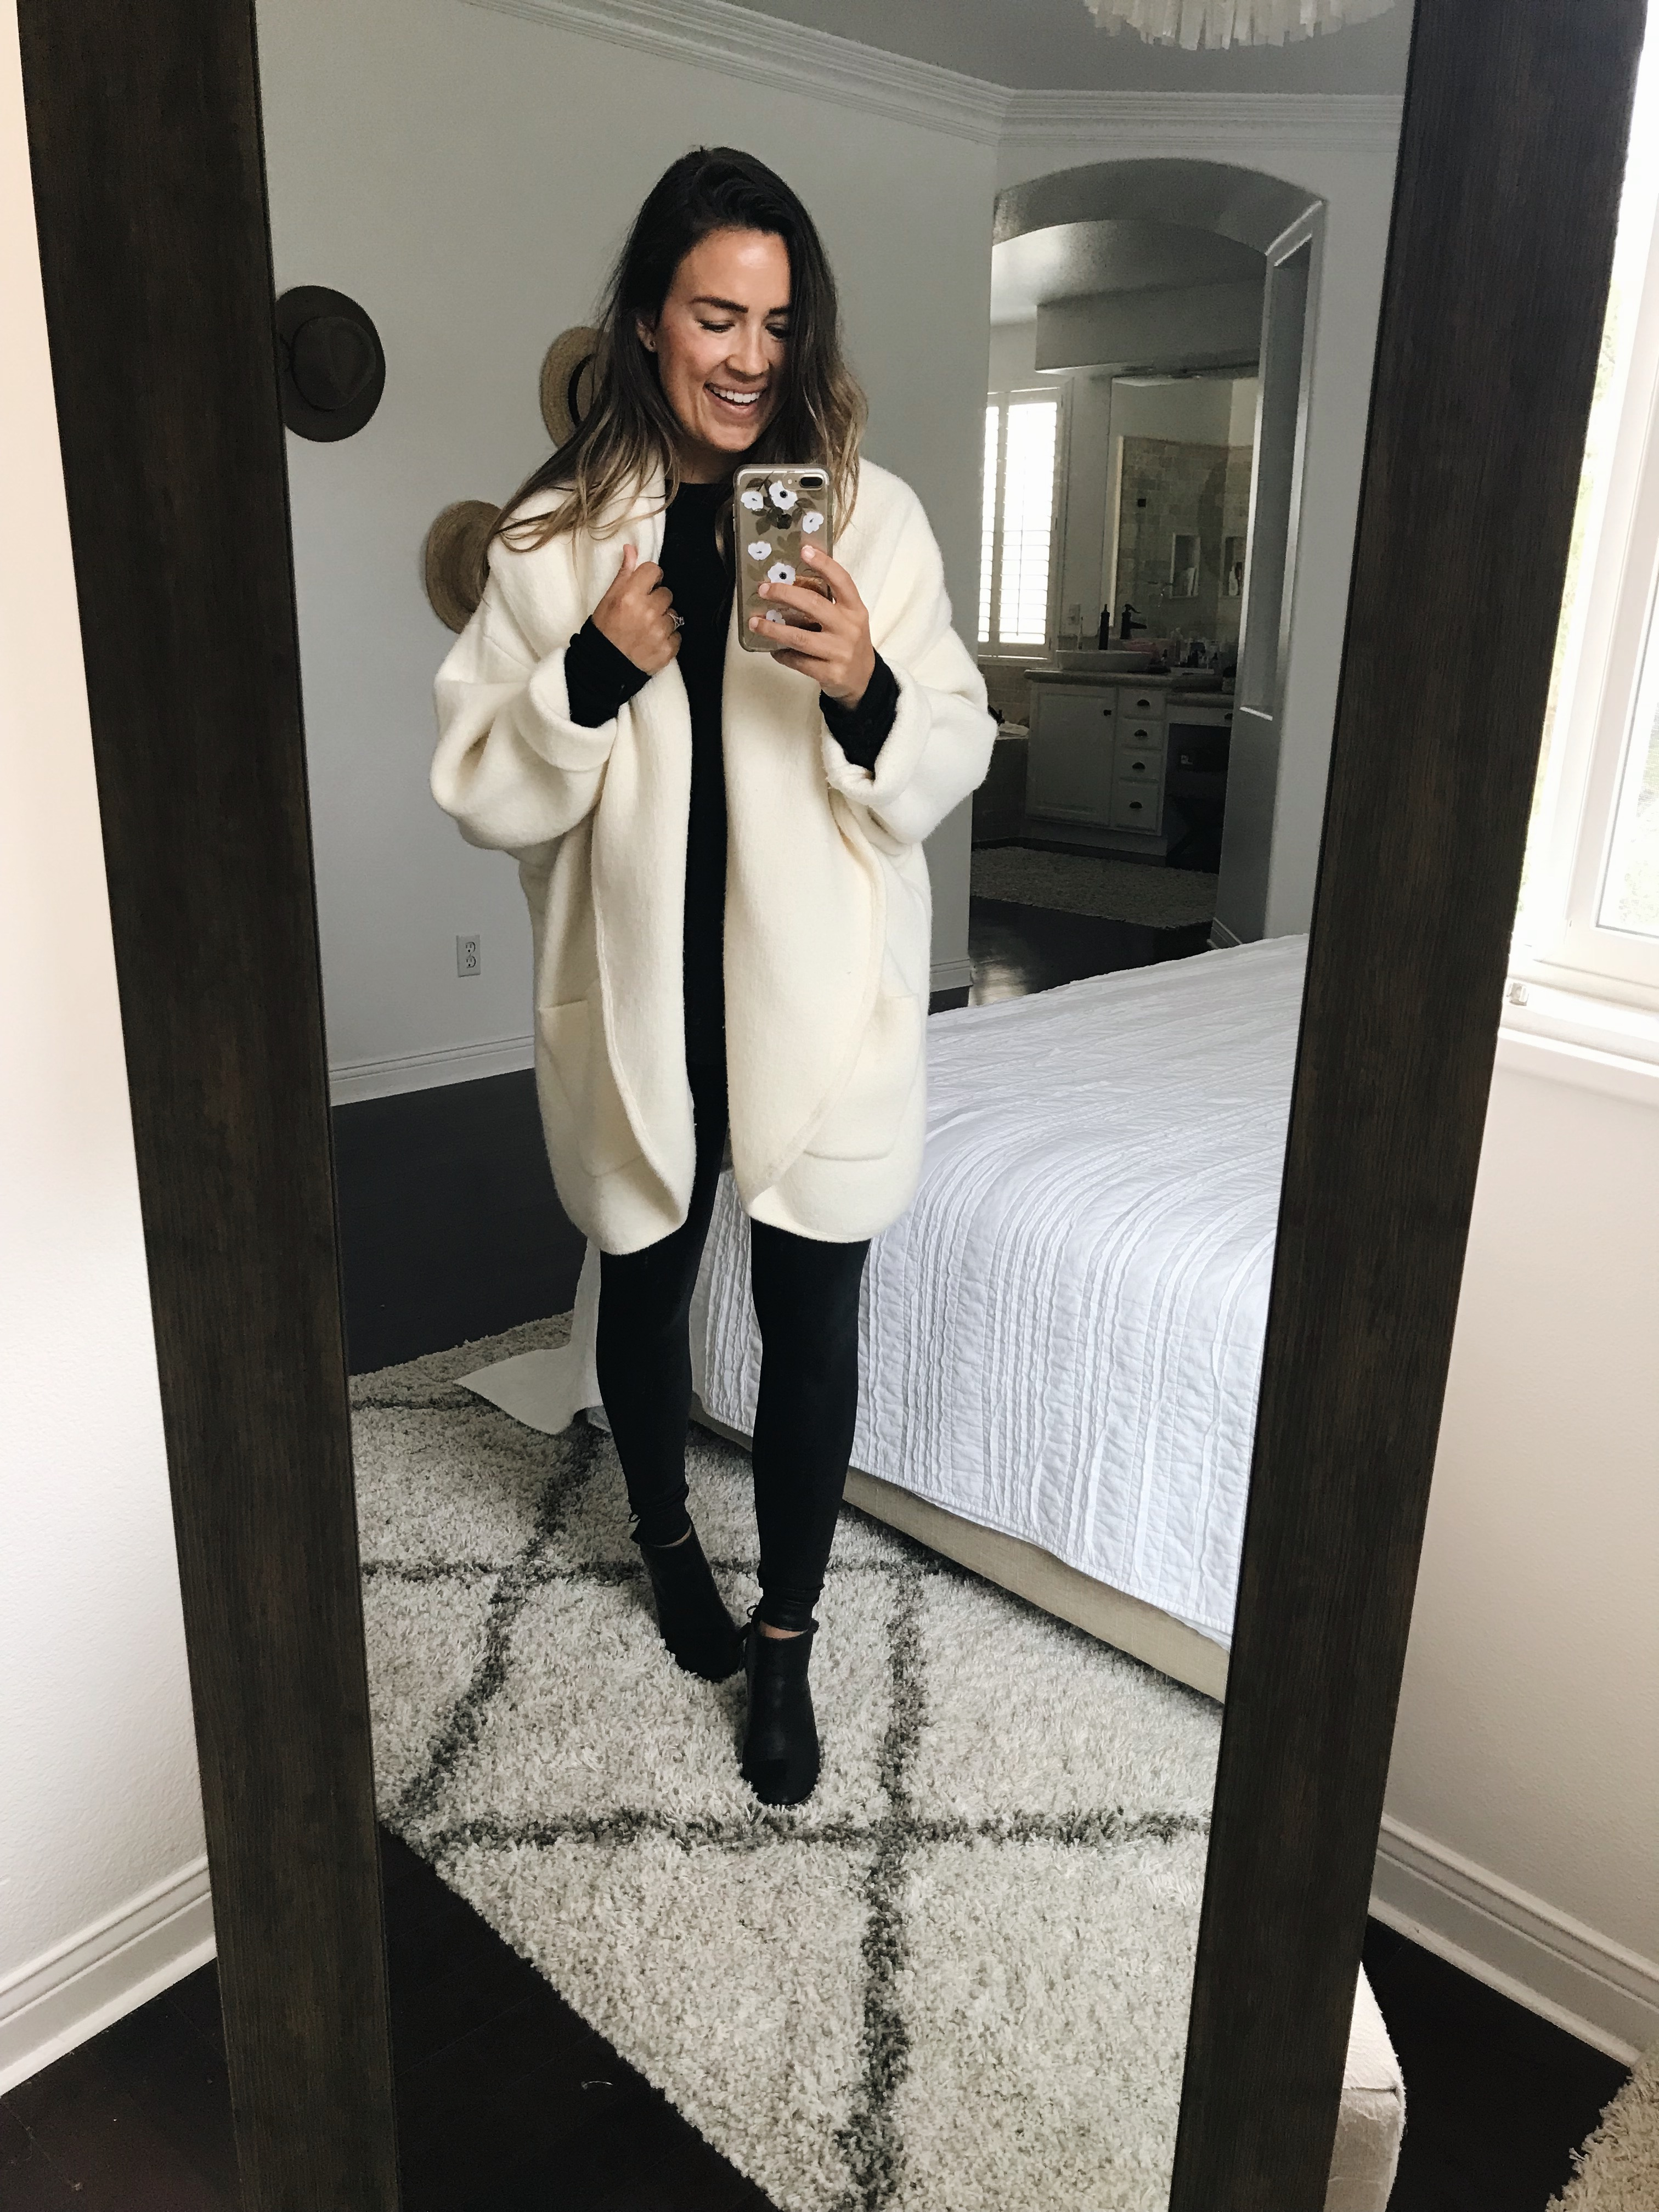 15a35c08193 Spanx leggings   Black top   Similar ankle boots   Similar white cardigan  (this is the Hygge cardigan from Anthro last year for those of you who ...